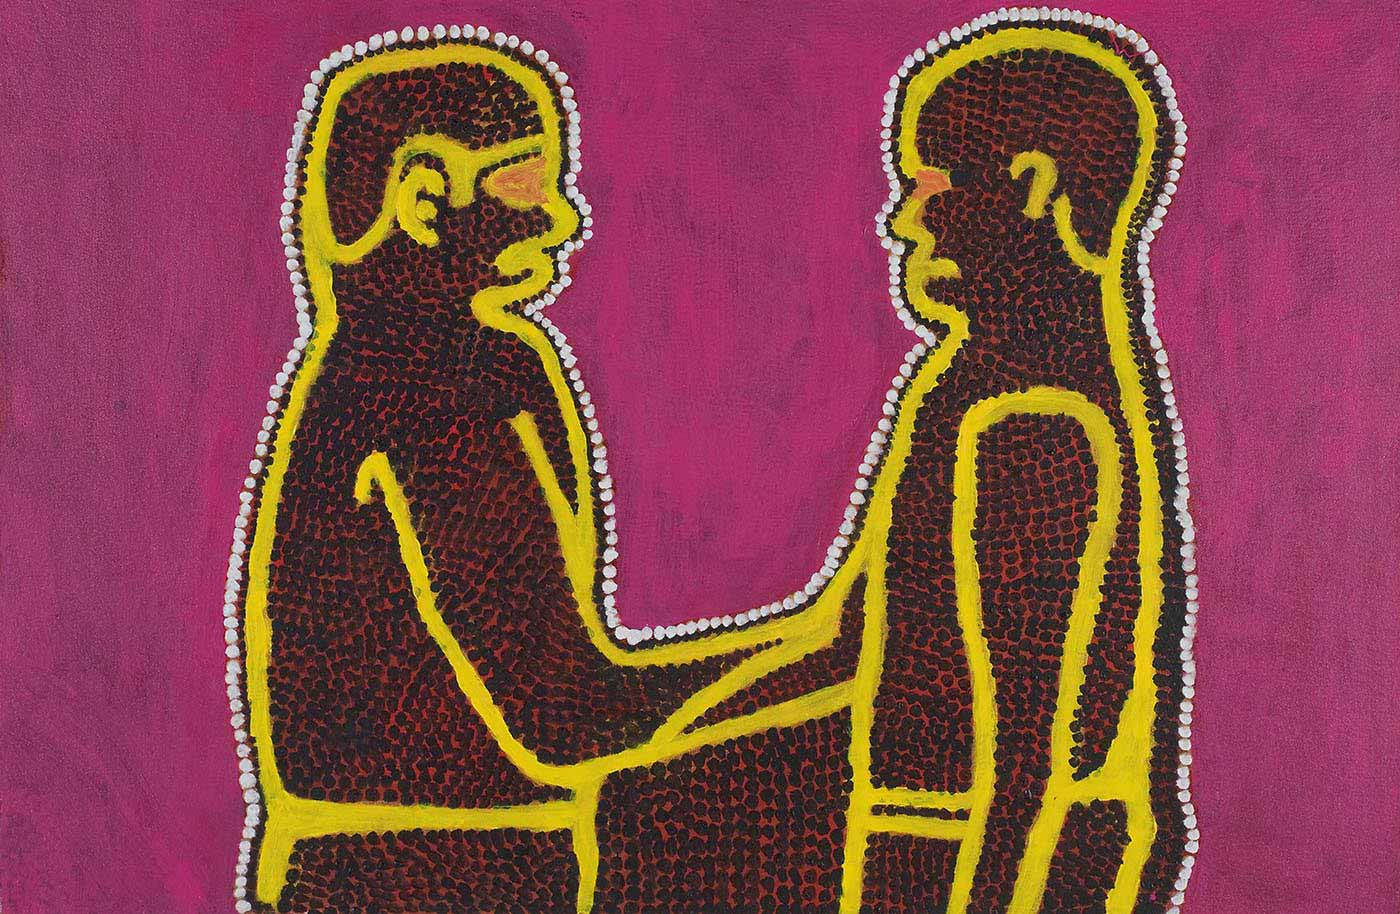 A painting on canvas of two human figures facing each other and joined at the hand or arm. The figures are outlined in yellow and filled with black dots over a pink background, with a white dotted edge around the two figures. The background is a dark pink-purple.  - click to view larger image